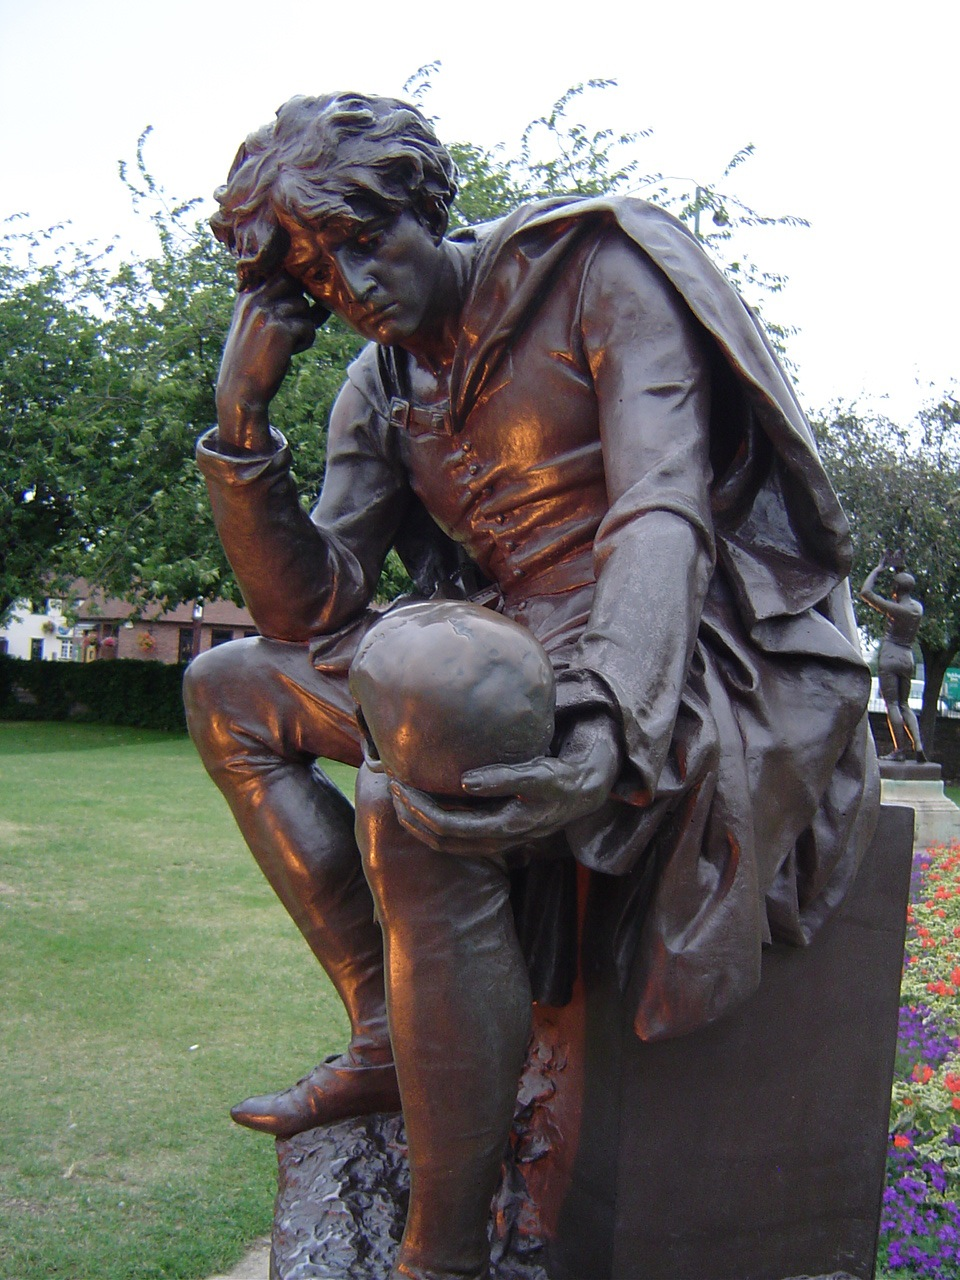 Lord Ronald Gower (British, 1845-1916) Hamlet (1888) Bronze. Life-size. Stratford-upon-Avon, United Kingdom. Photo via Wall Flower Gone Wild, Flickr.